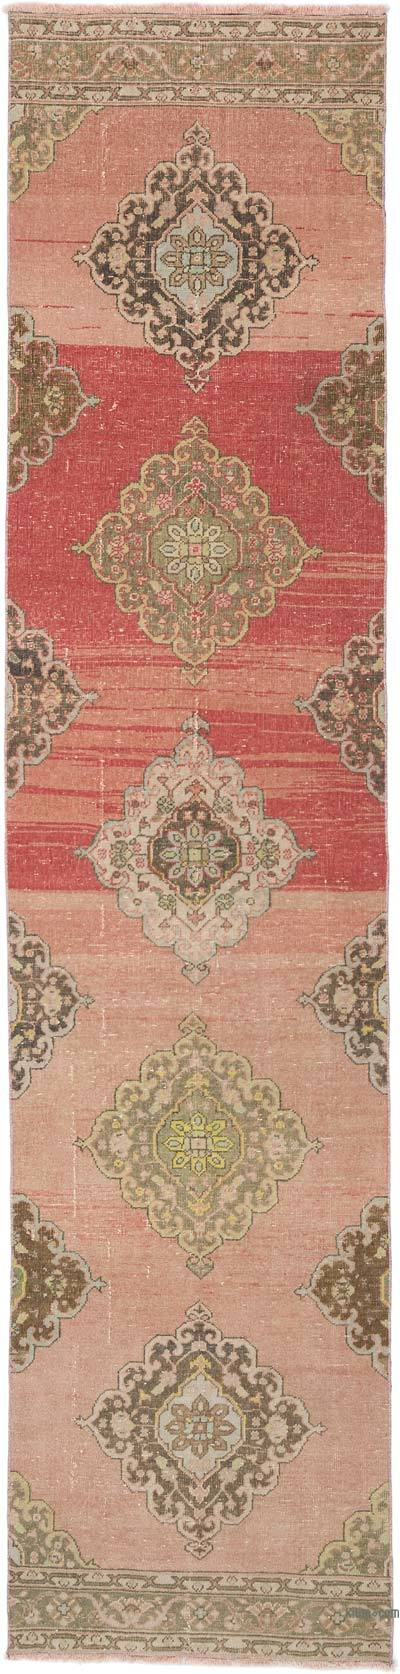 """Vintage Turkish Hand-Knotted Runner - 2' 10"""" x 12' 2"""" (34 in. x 146 in.)"""